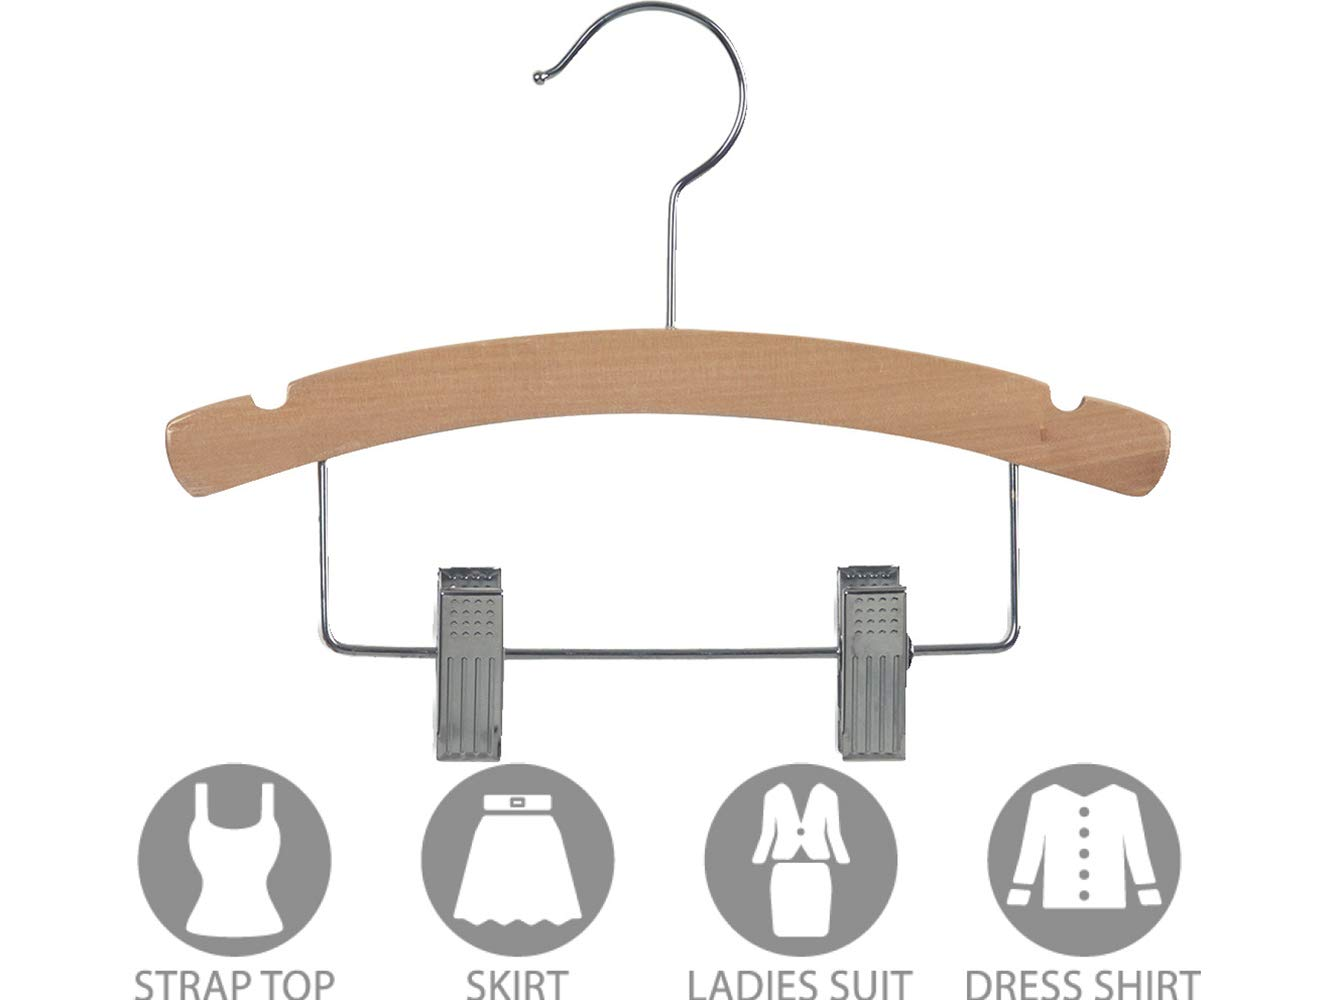 Kids Combo Hangers with Adjustable Clips and Natural Finish (Box of 100) by The Great American Hanger Company by The Great American Hanger Company (Image #3)